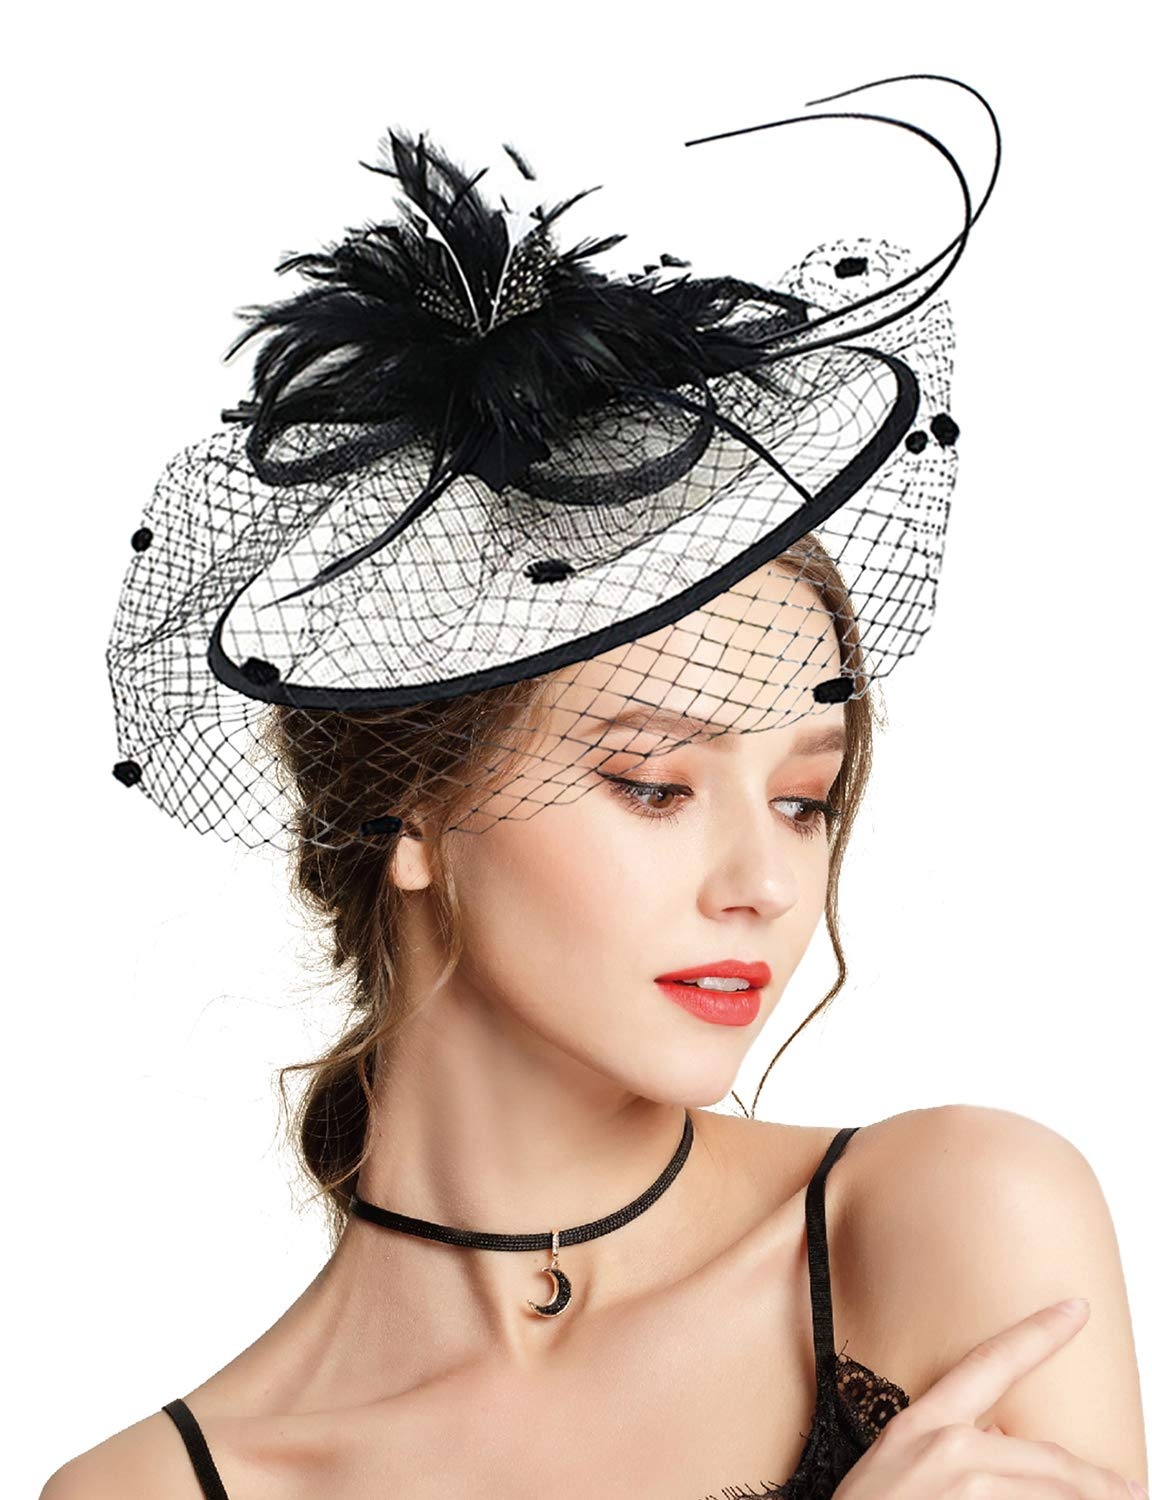 Z&X Fascinator with Headband Derby Party Feather Floral Mesh Pillbox Hat Black by Z&X